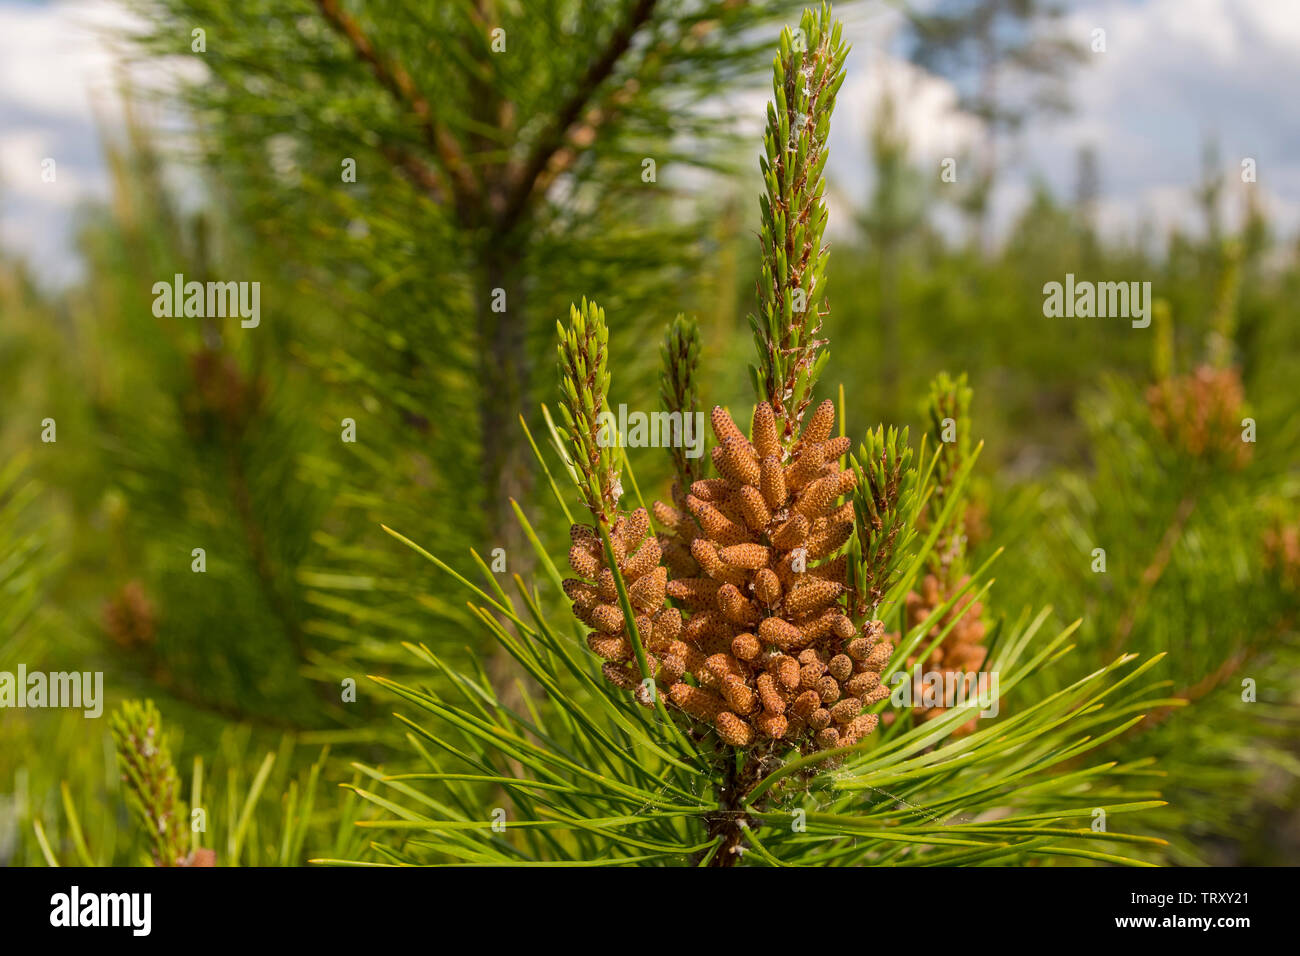 Closeup of pollen containers on a twig from pine (Pinus contorta), picture from Northern Sweden. - Stock Image